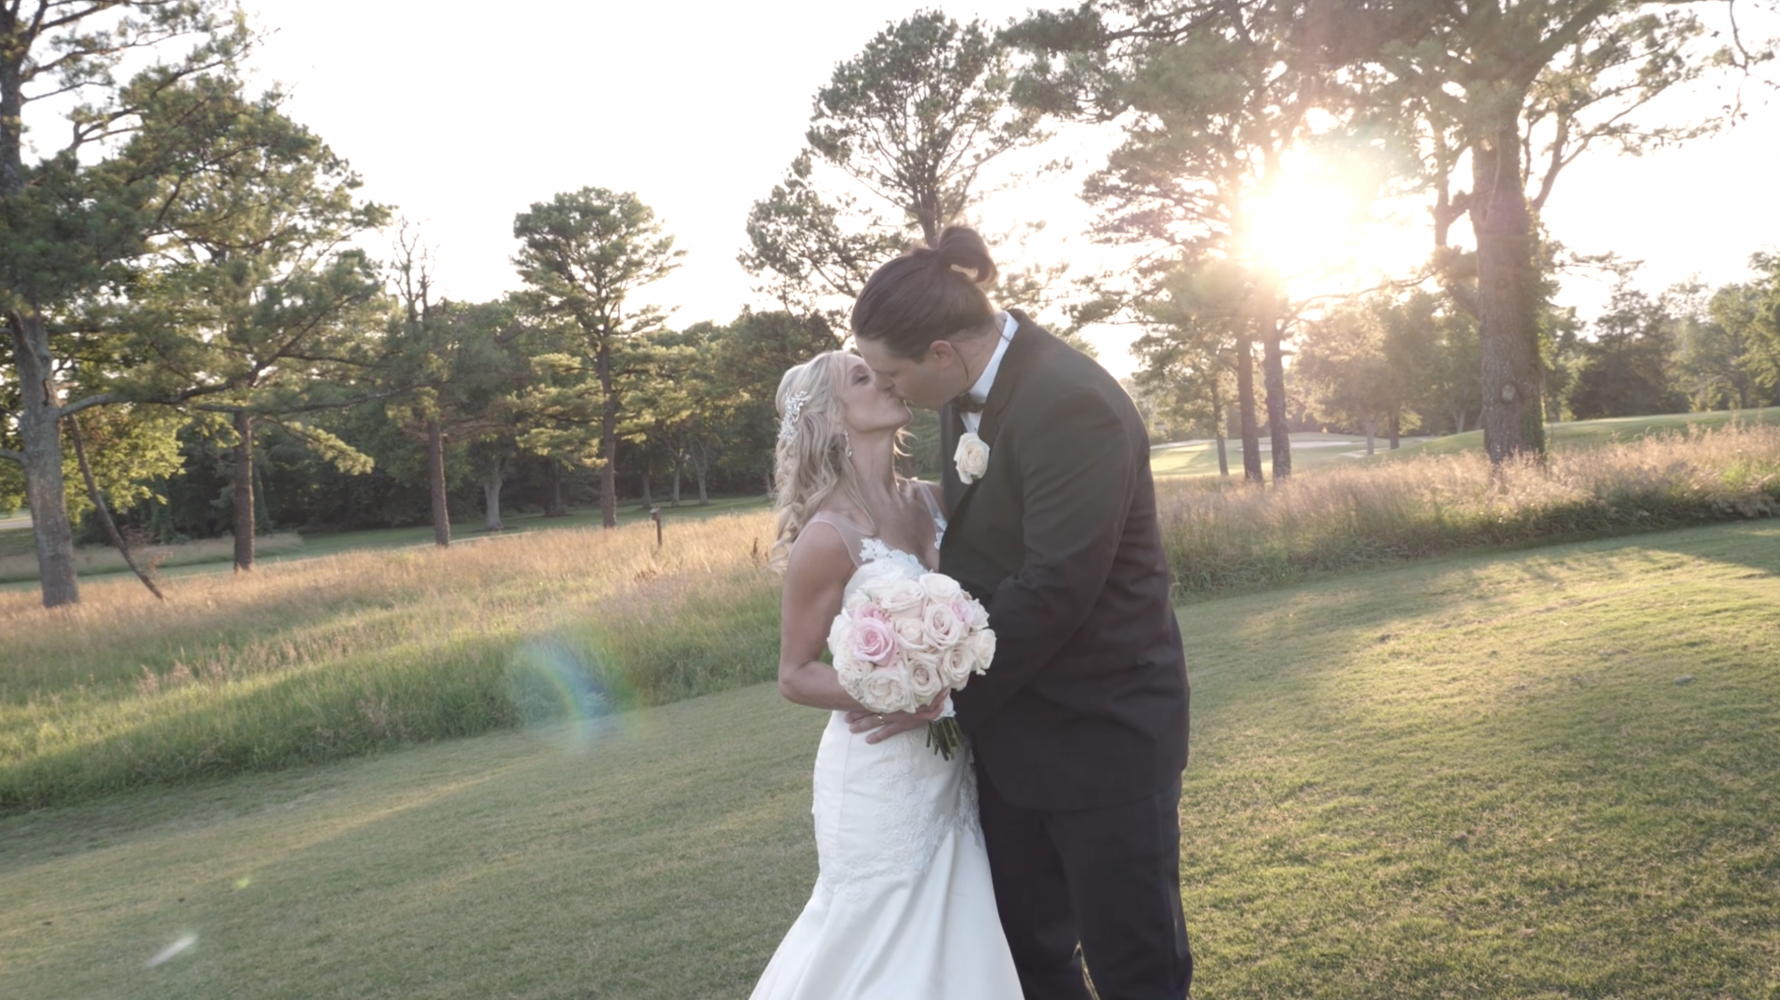 Matthew + Sarah | Murfreesboro, Tennessee | Stones River Country Club